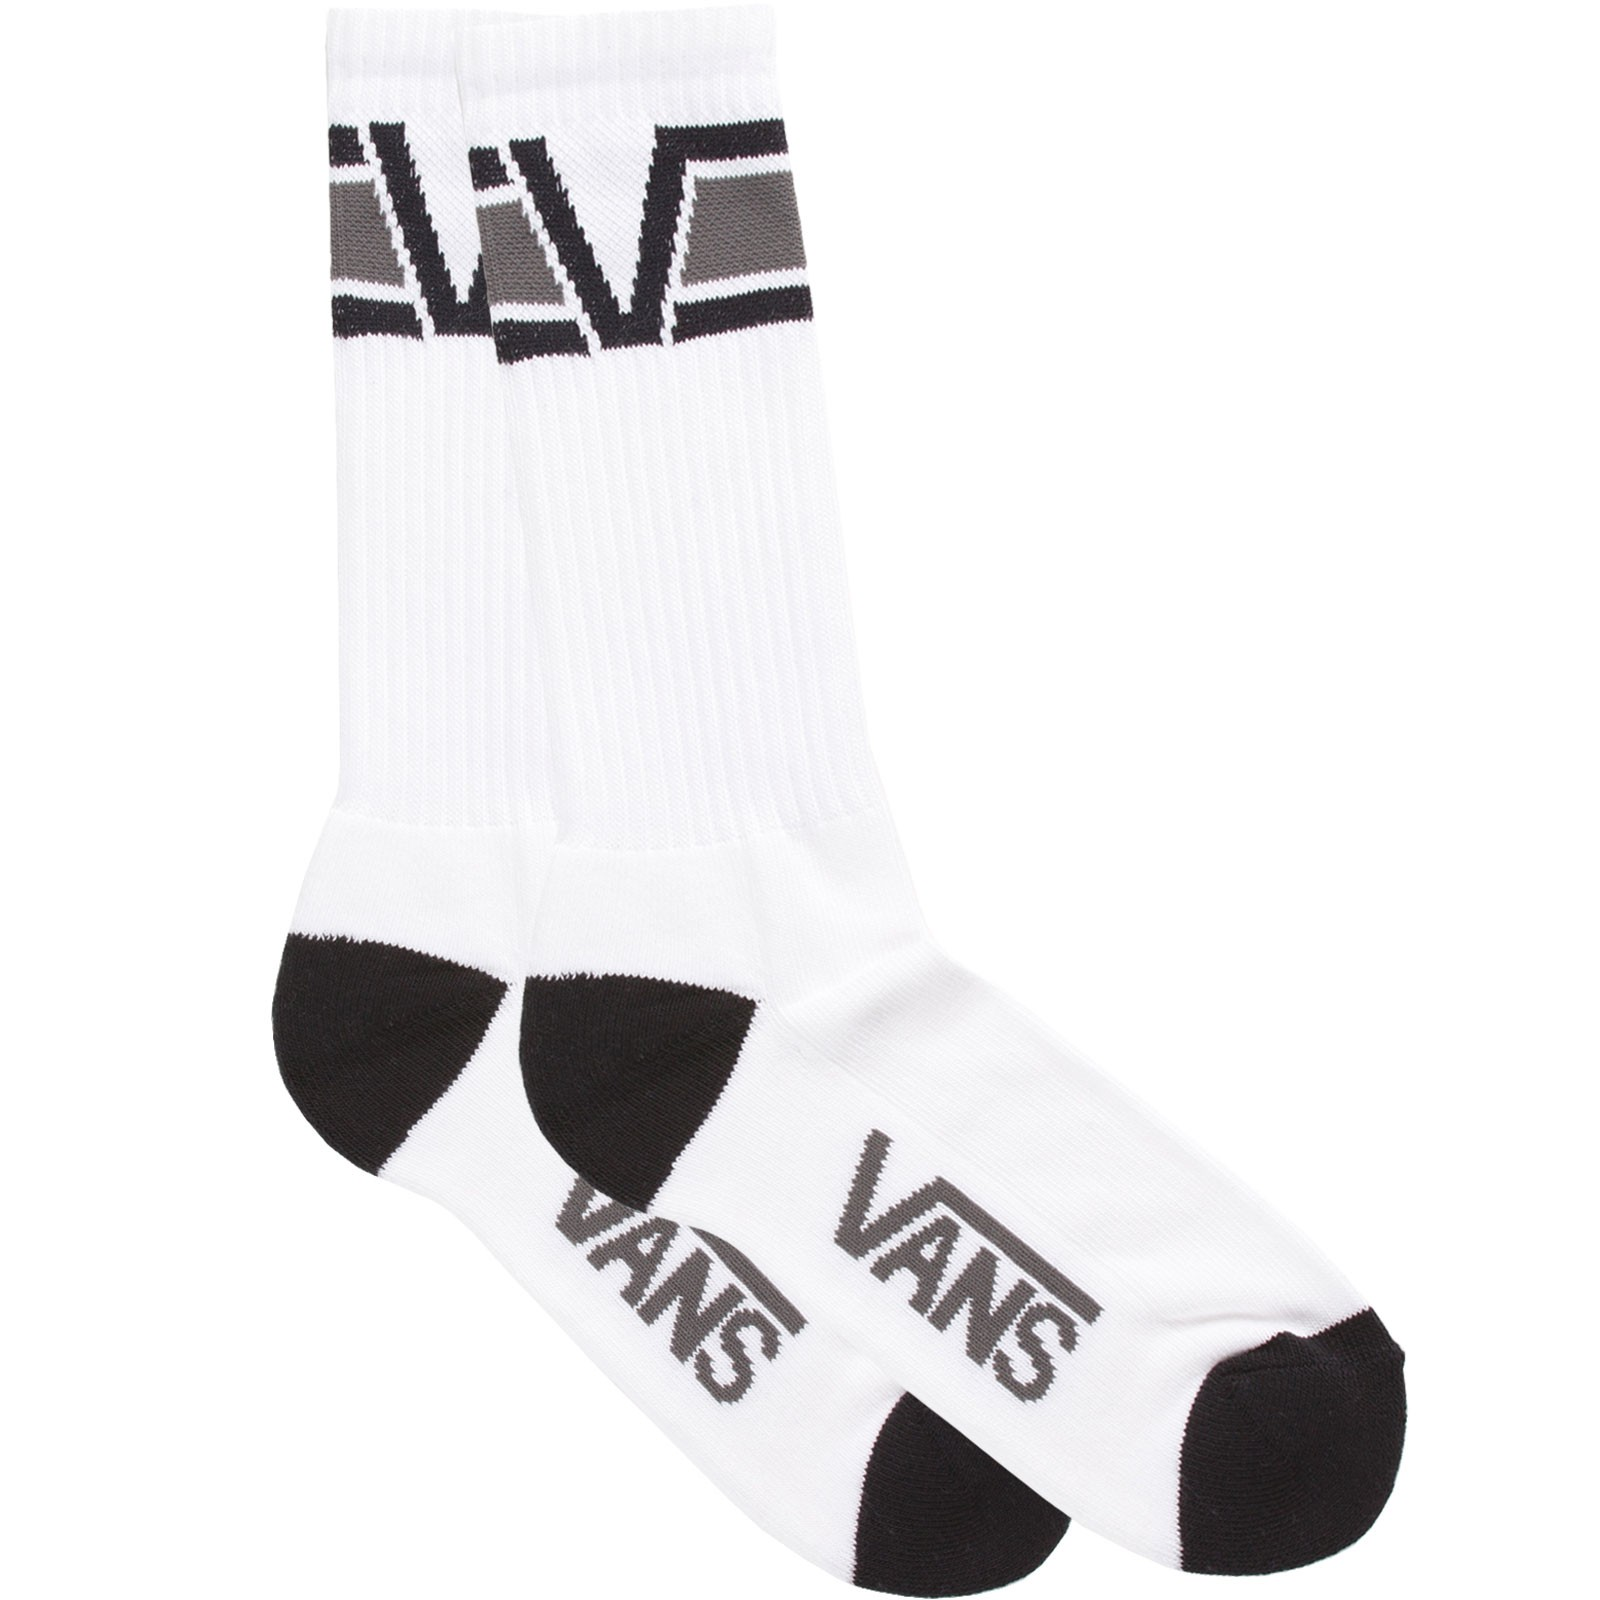 Vans Big V Socks - 1 Pack - Black / Gravel